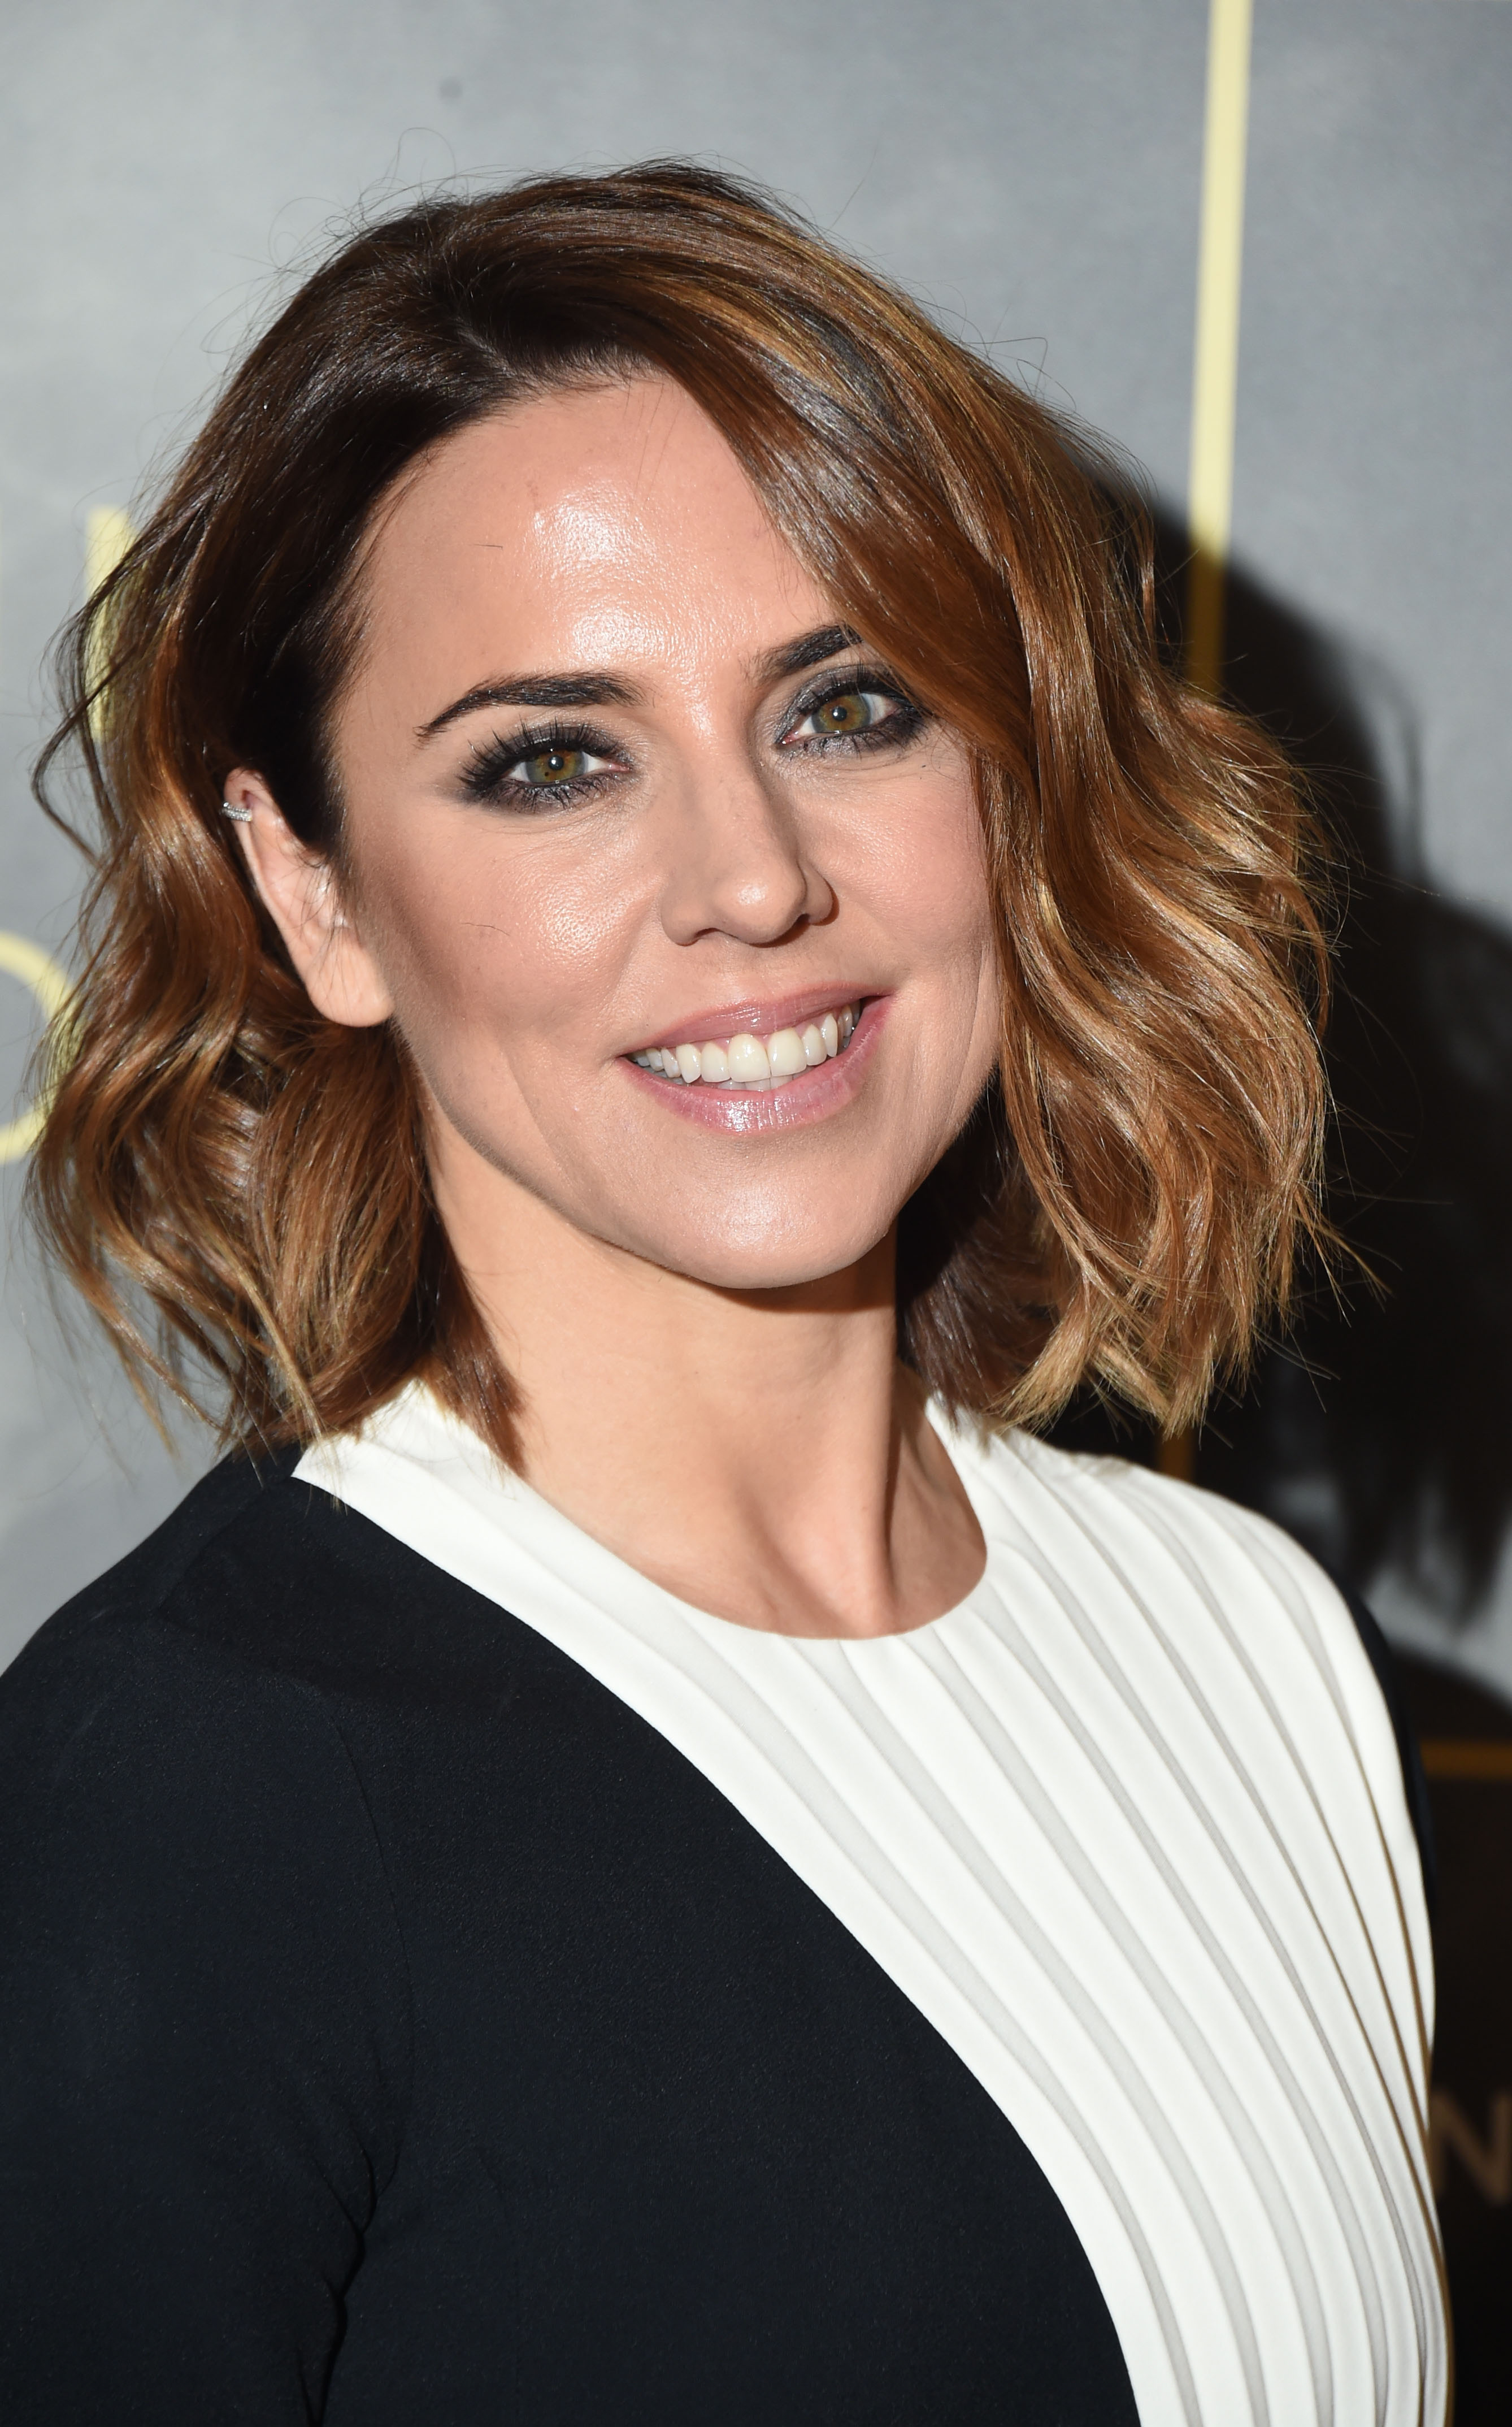 Sporty Spice Melanie C Sings Too Much In 2015 It Will Give Spice Girls Fans Chills Video